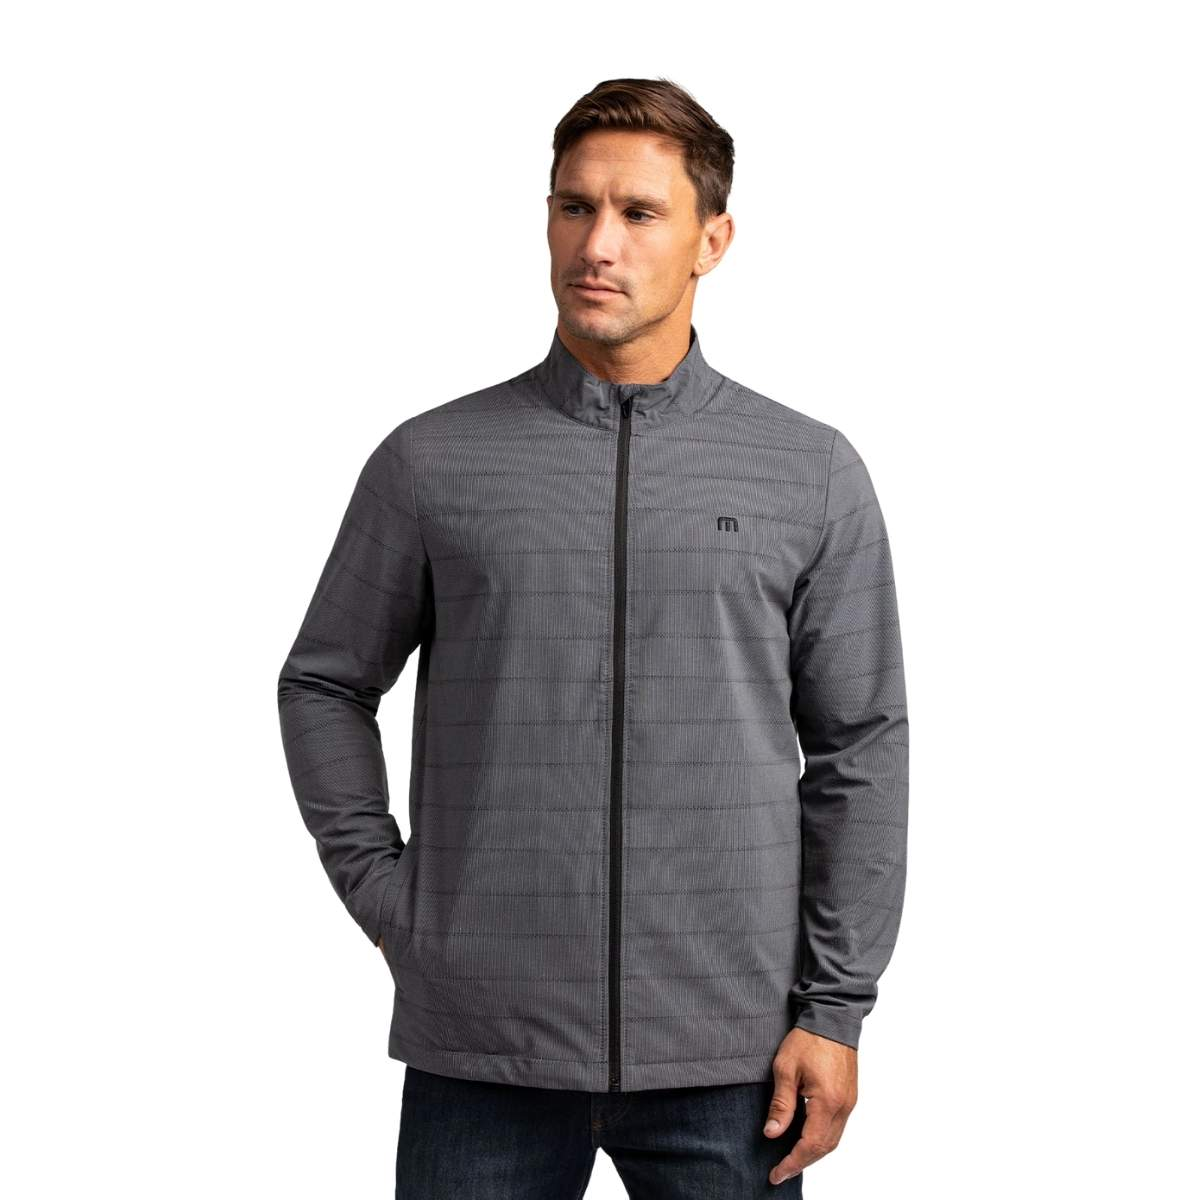 Travis Mathew Leo Carillo Full Zip Jacket